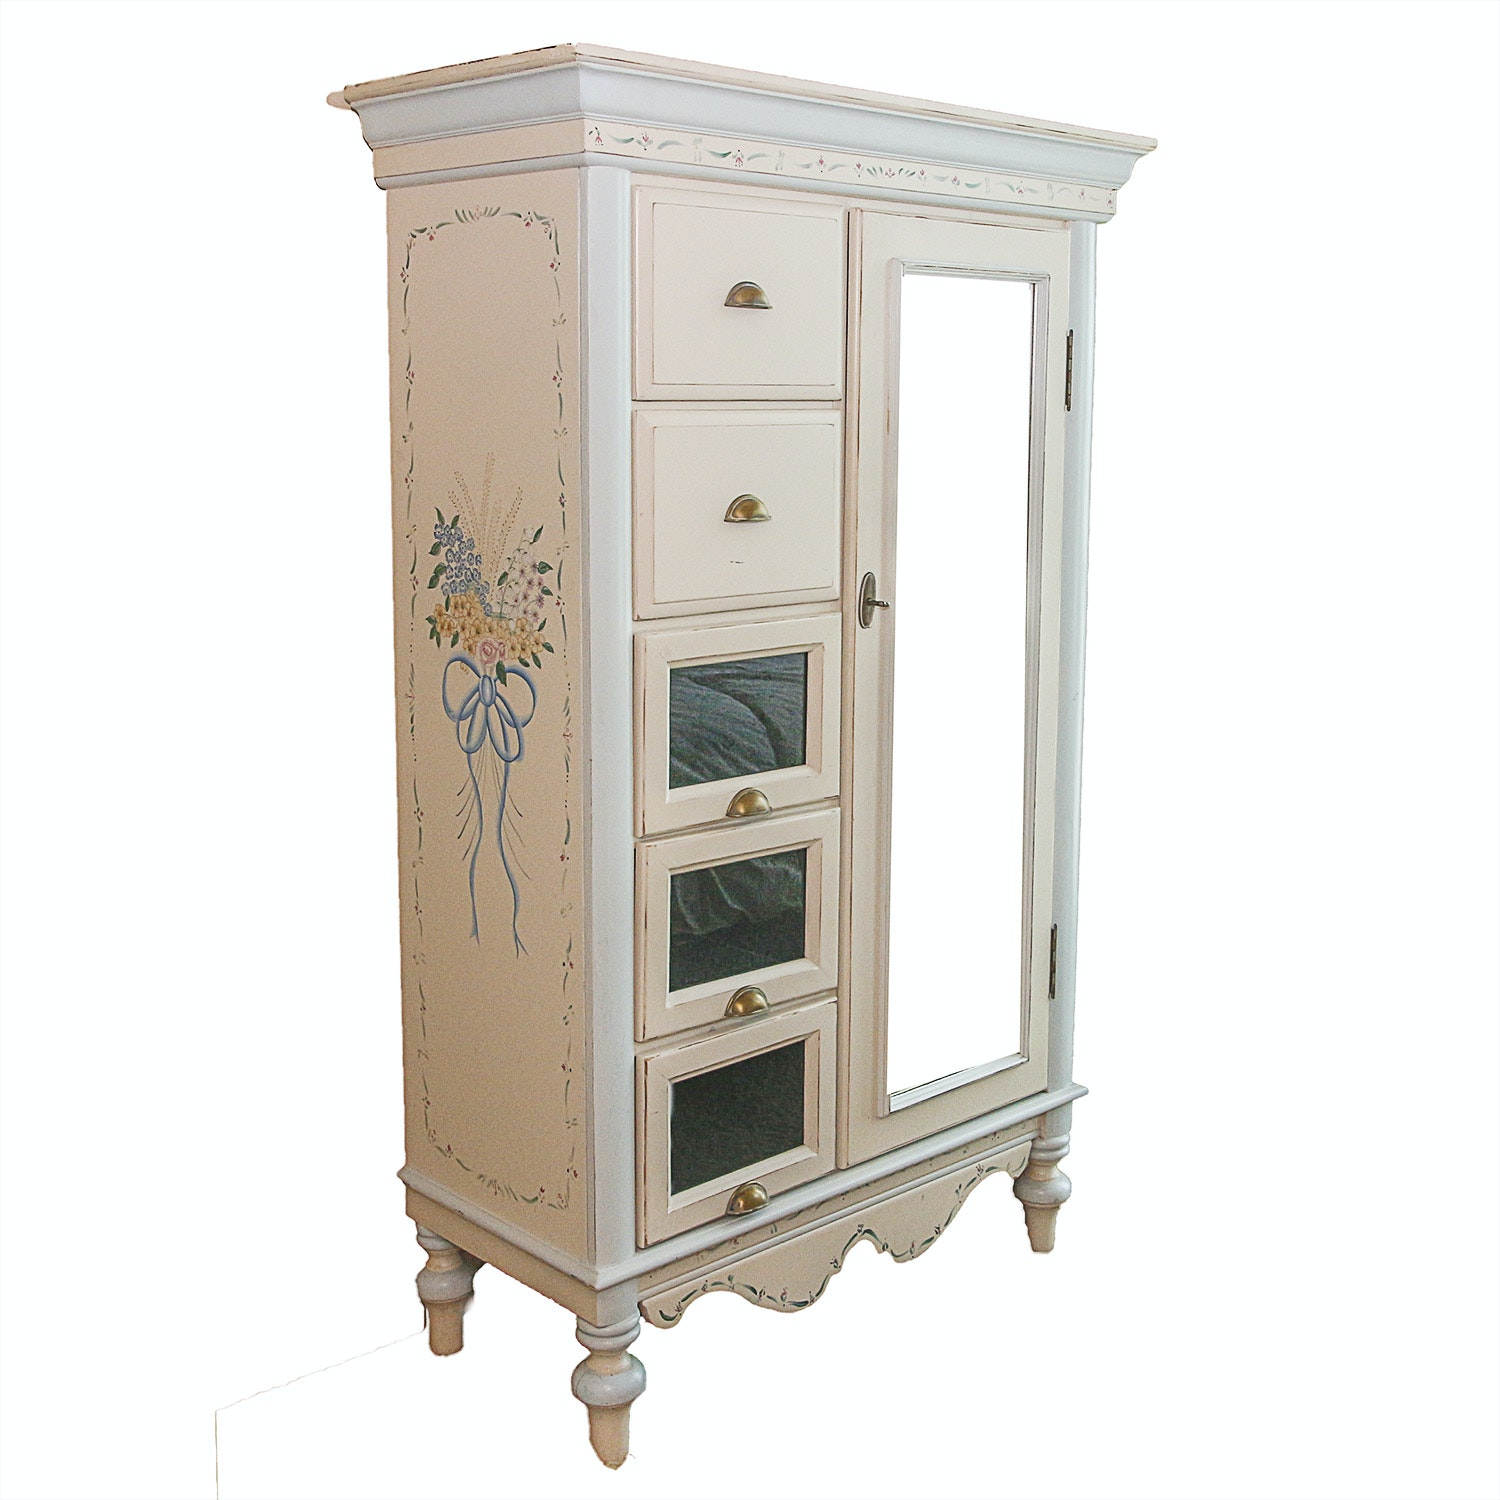 White Wardrobe with Painted Floral Design